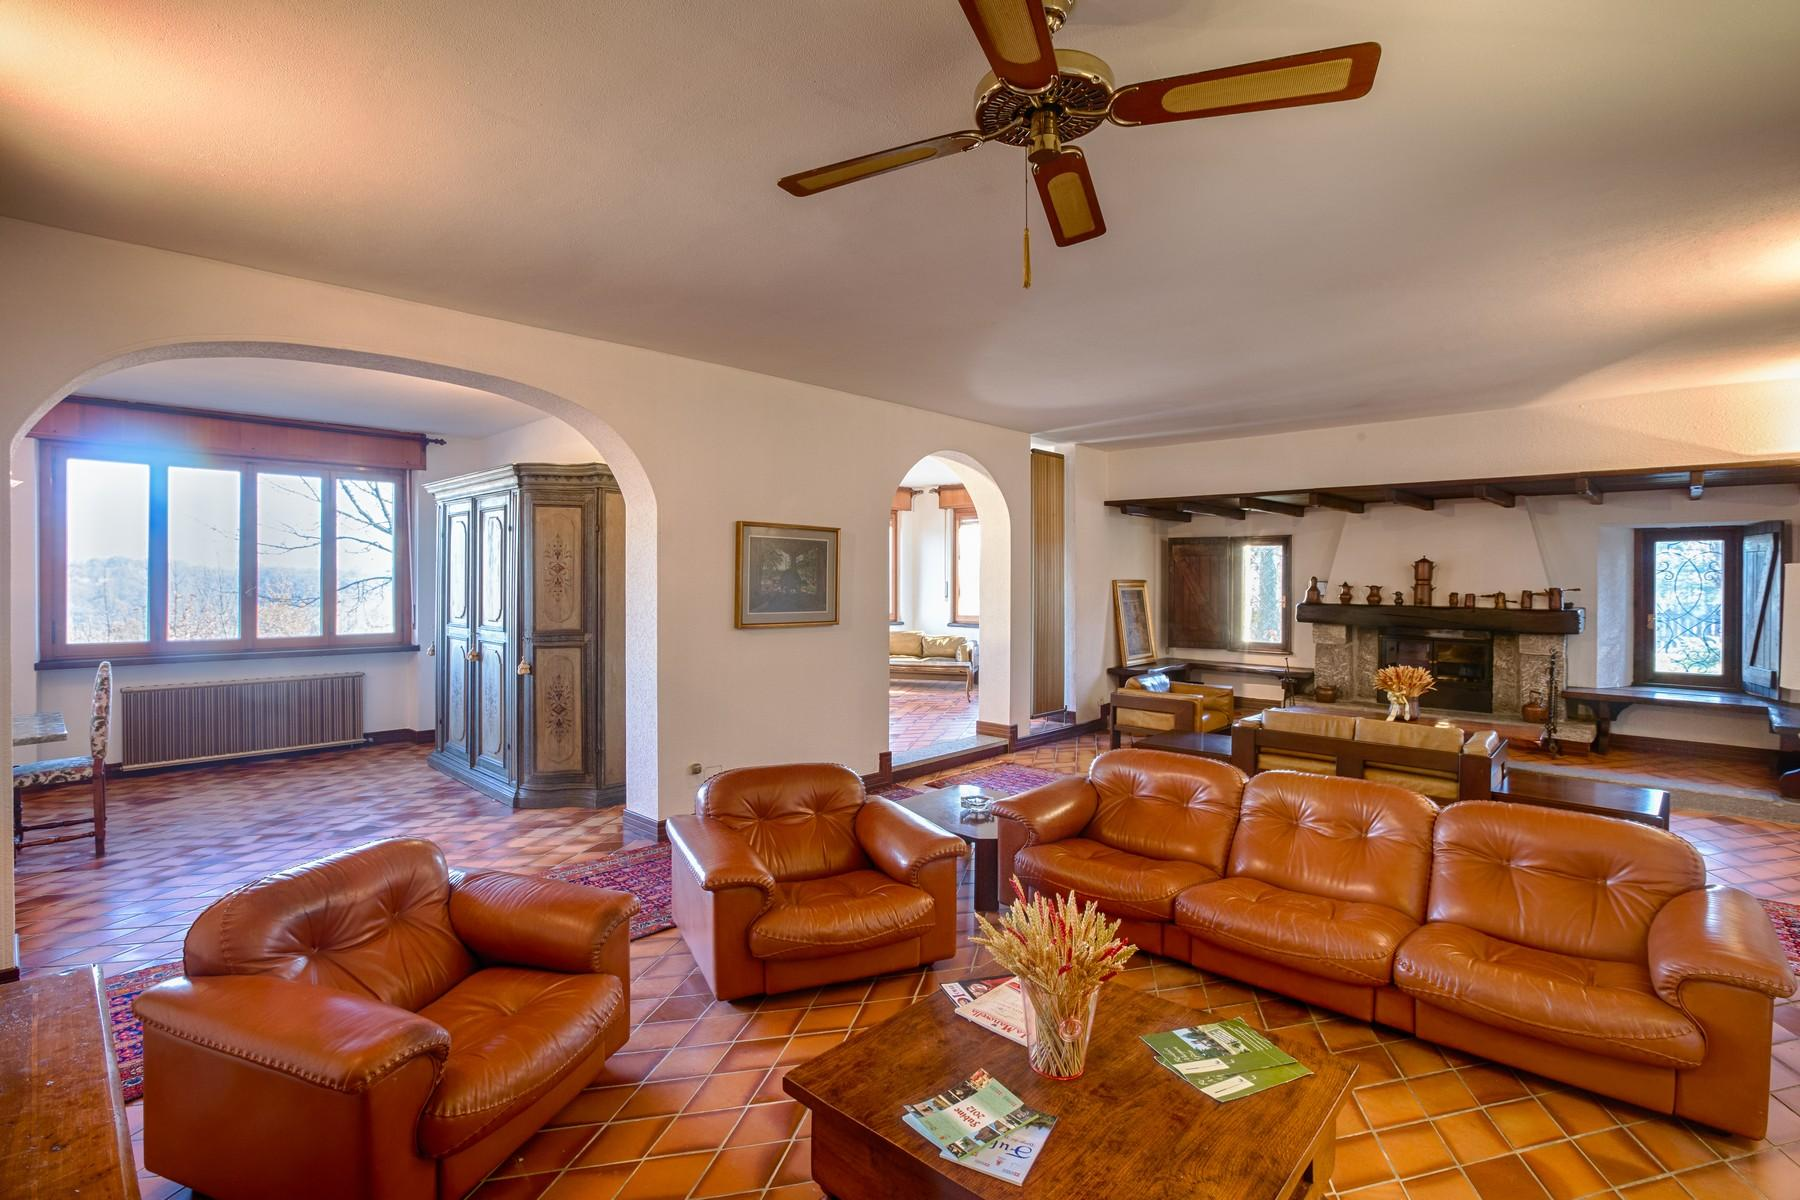 Incomparable farmhouse in the heart of the Monferrato region - 8